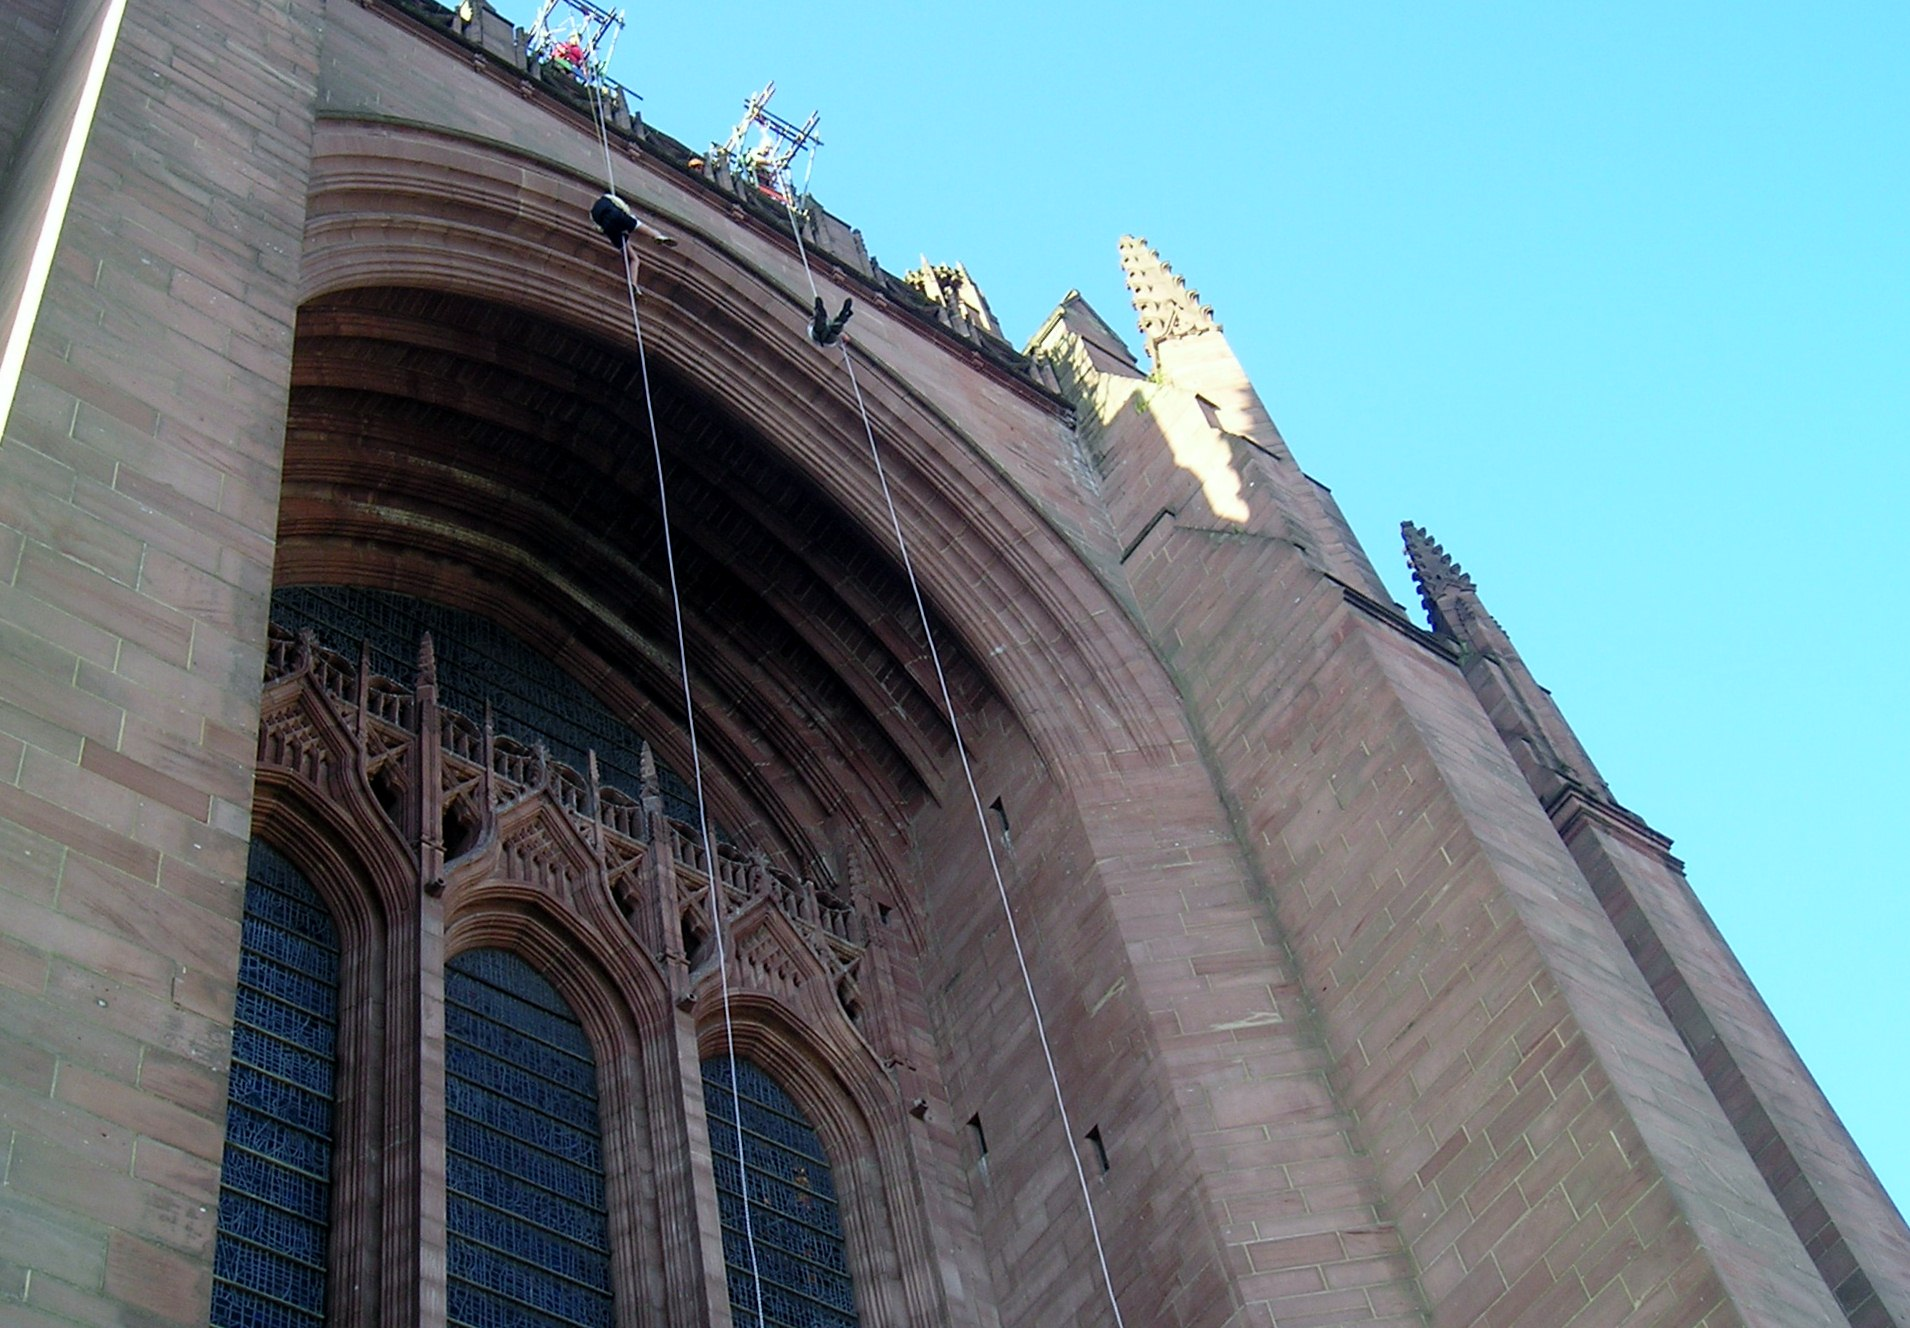 Ken Porter & his grandson Matthew Abbott abseiling down Liverpool Cathedral for Sreepur charity, Aug 2014